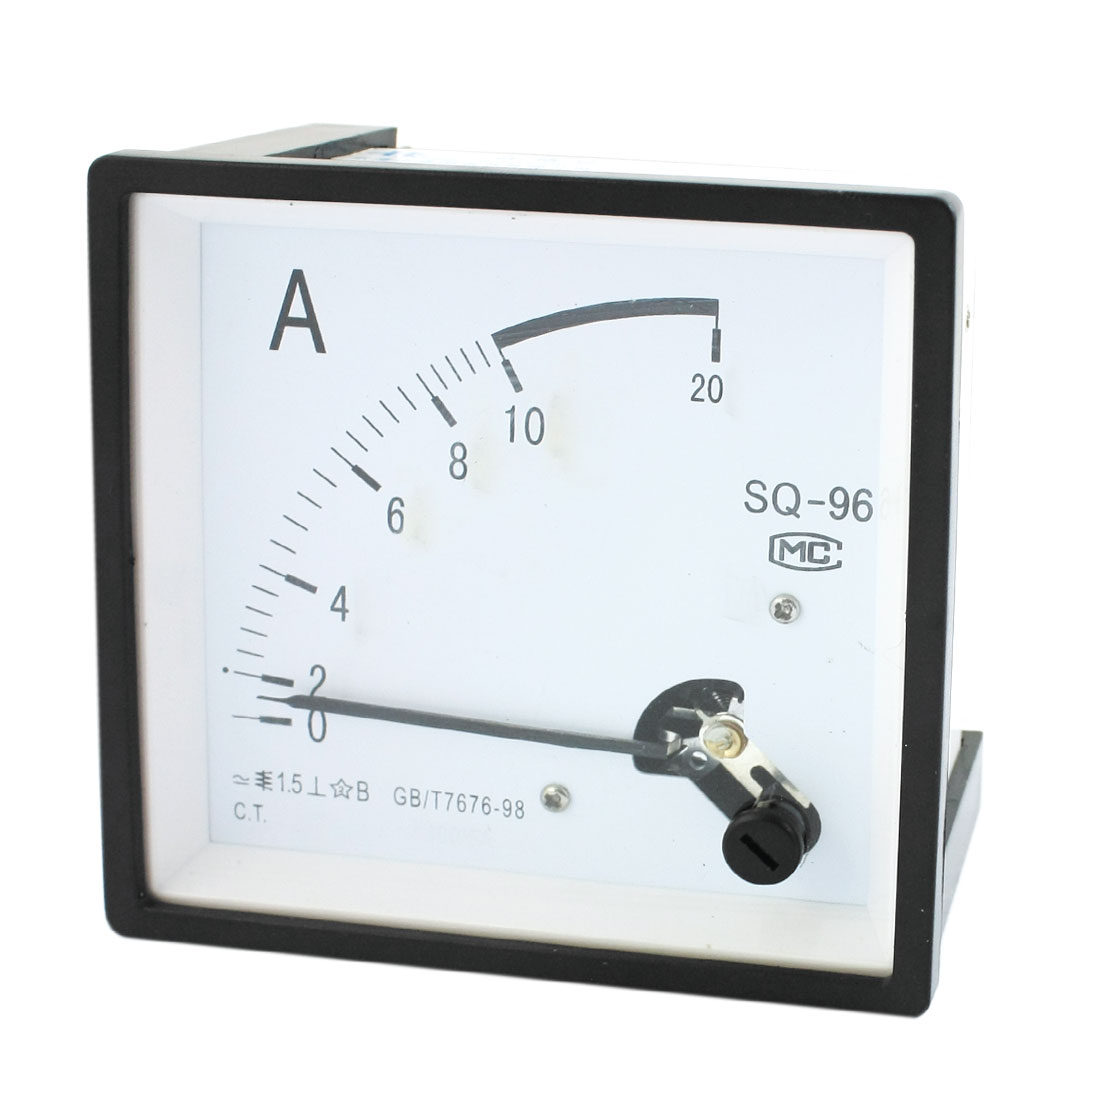 AC 0-10A Measuring Range Class 1.5 Current Testing Panel Mounting Rectangle Analog Meter Amperemeter